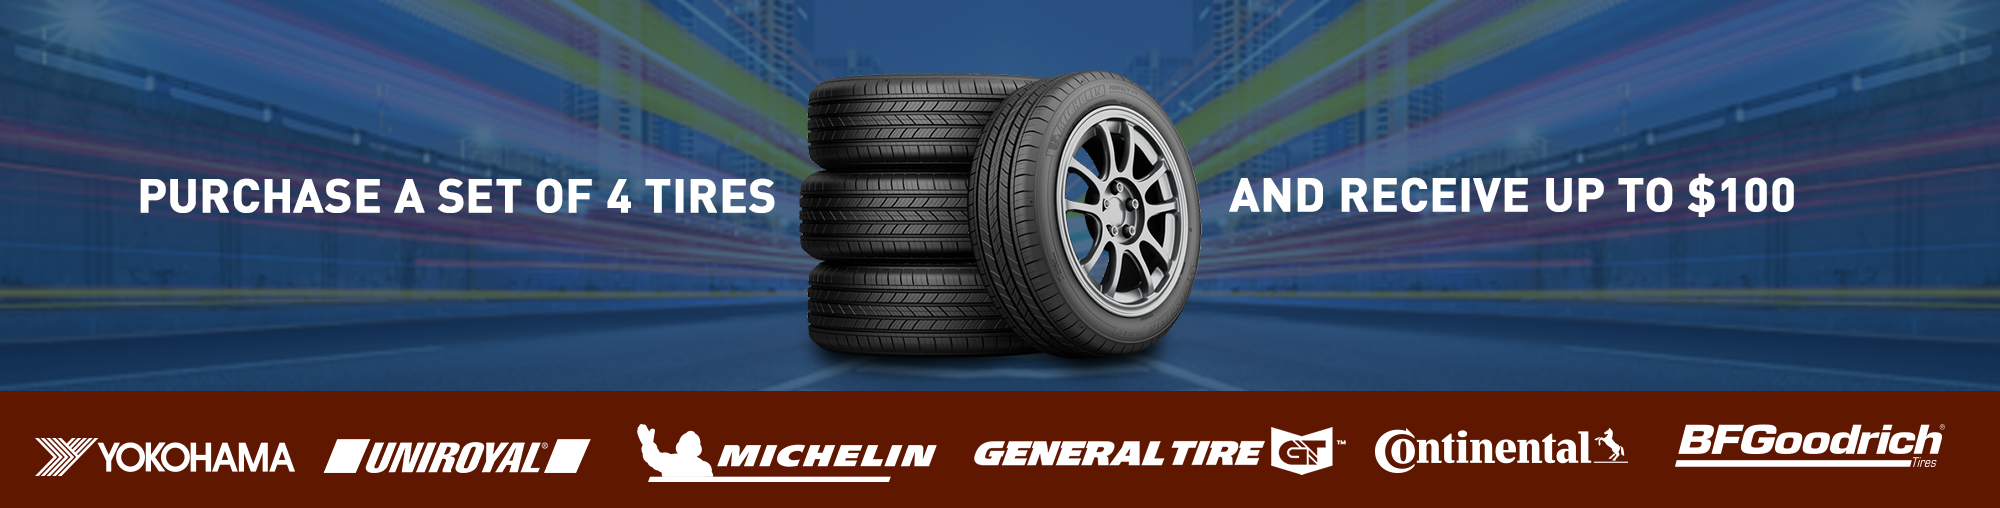 Tire Rebate and Promotions